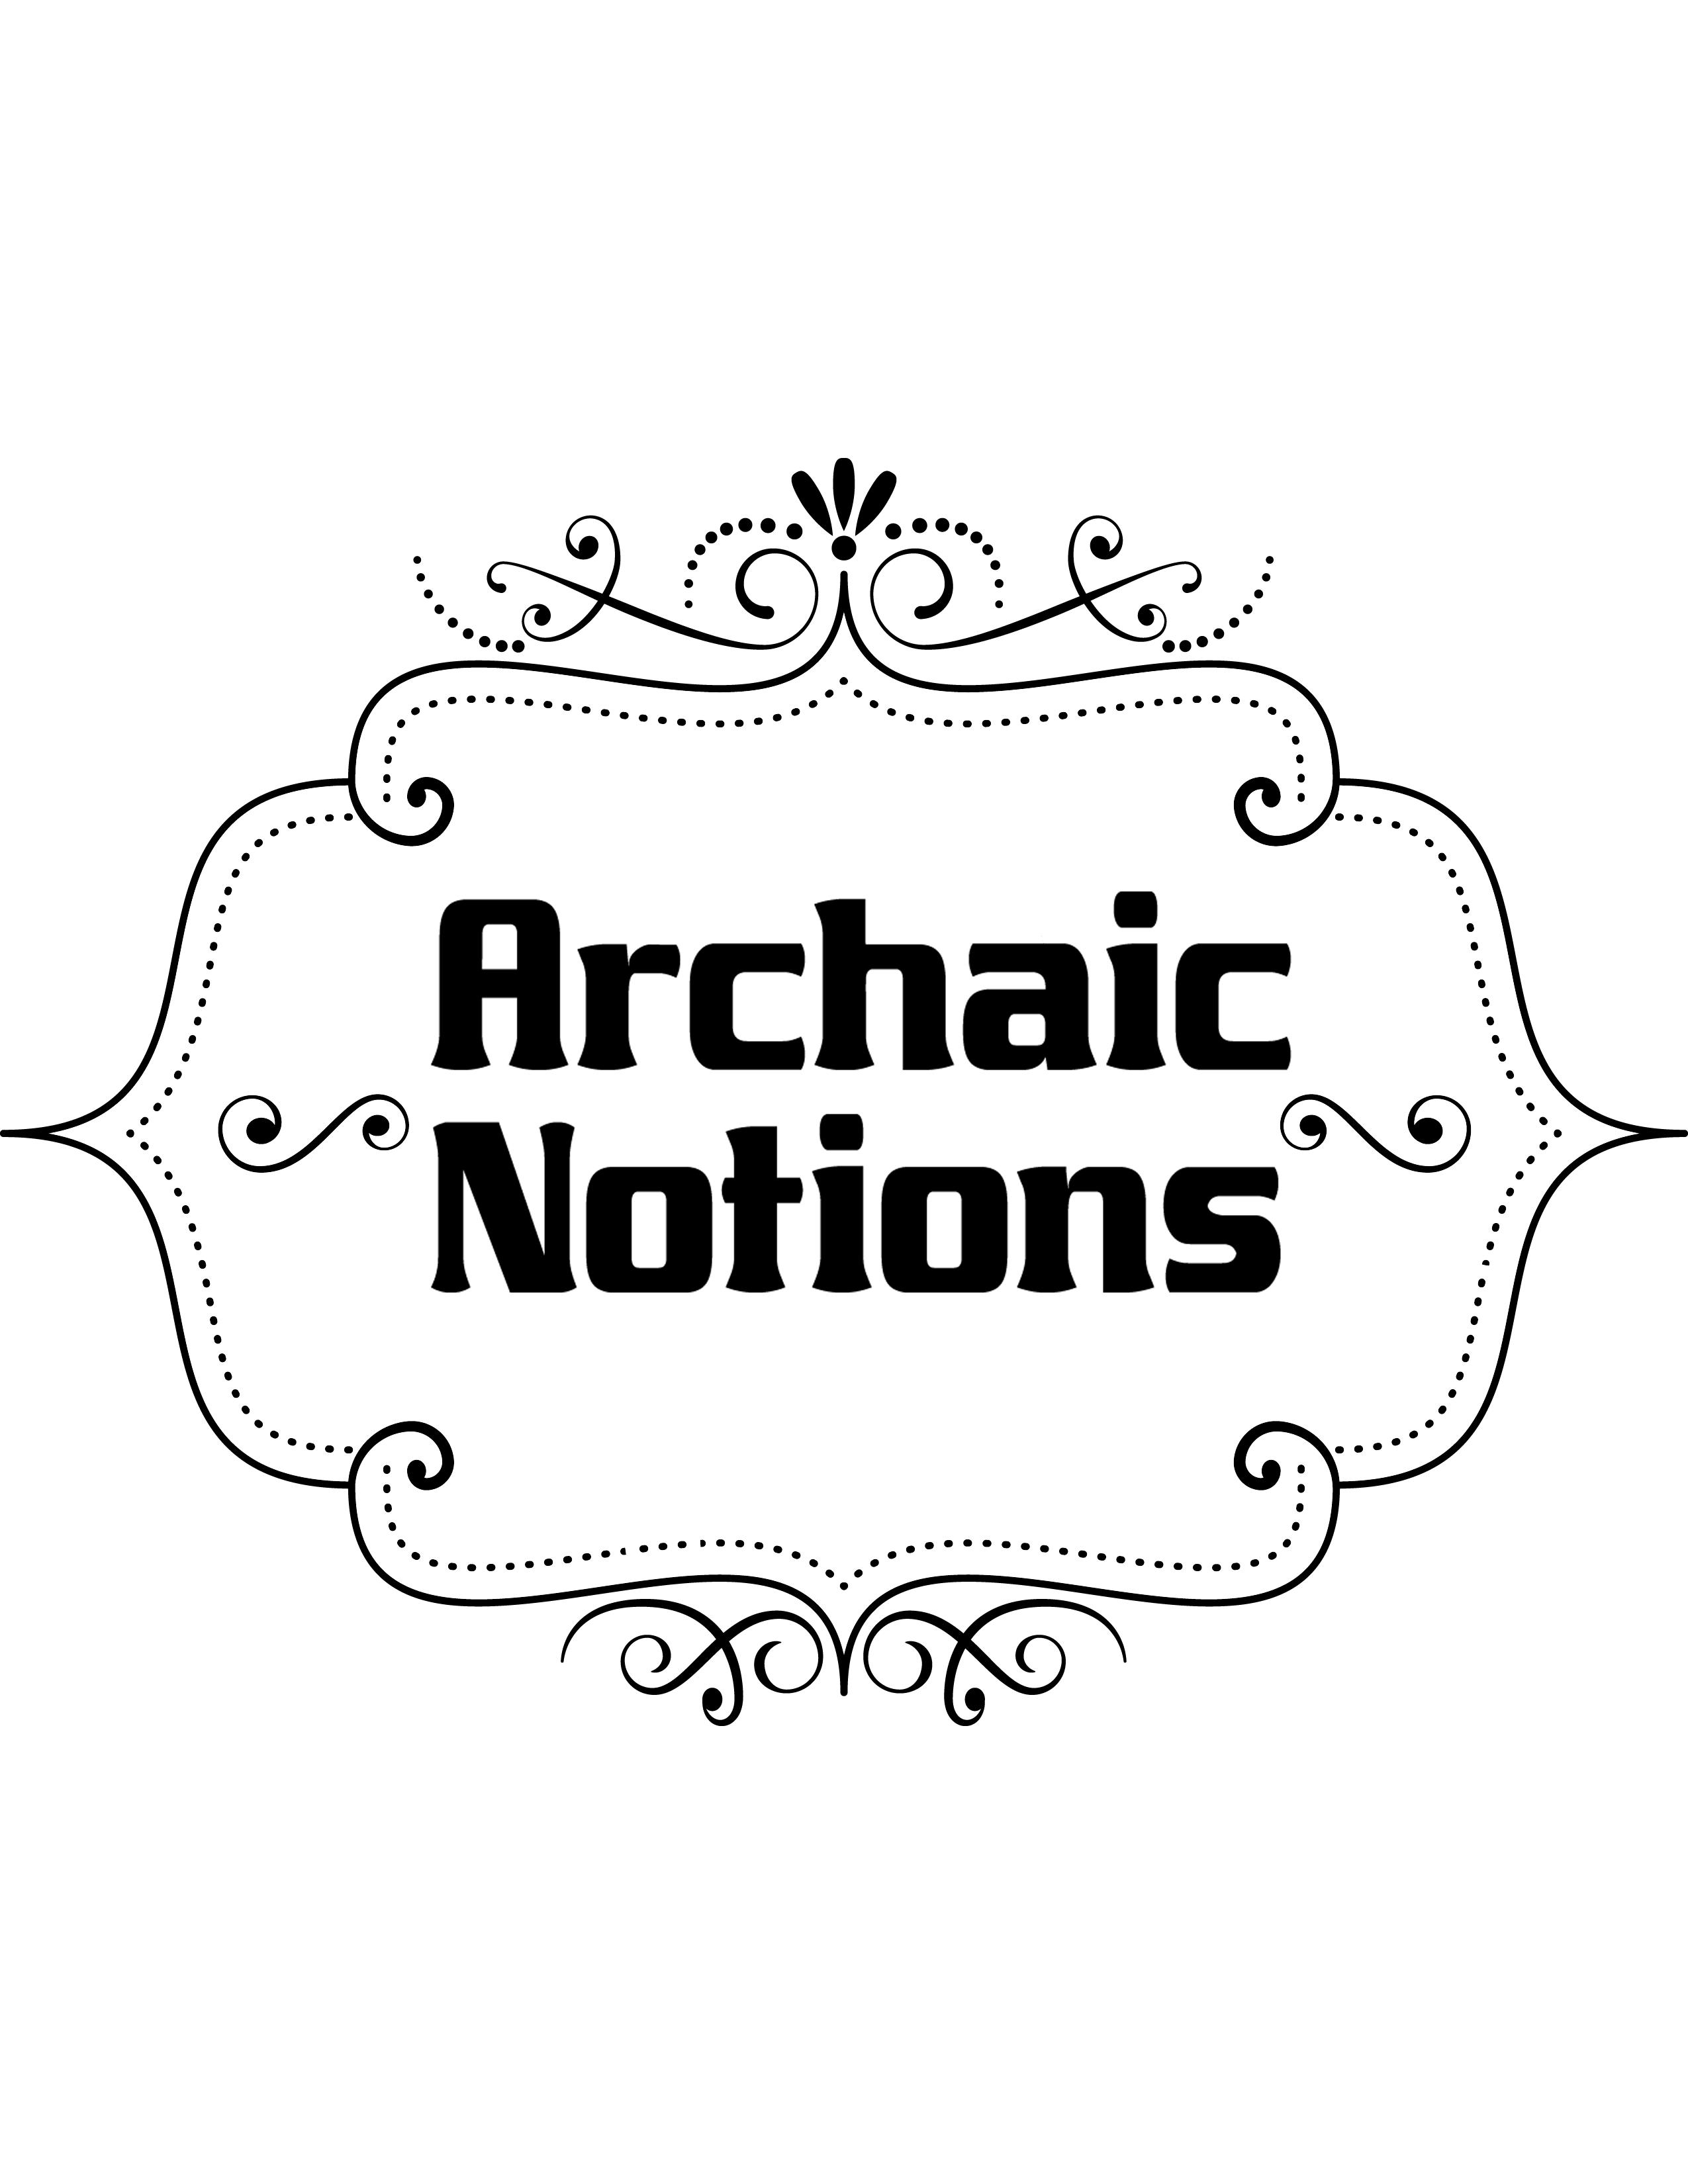 Archaic Notions